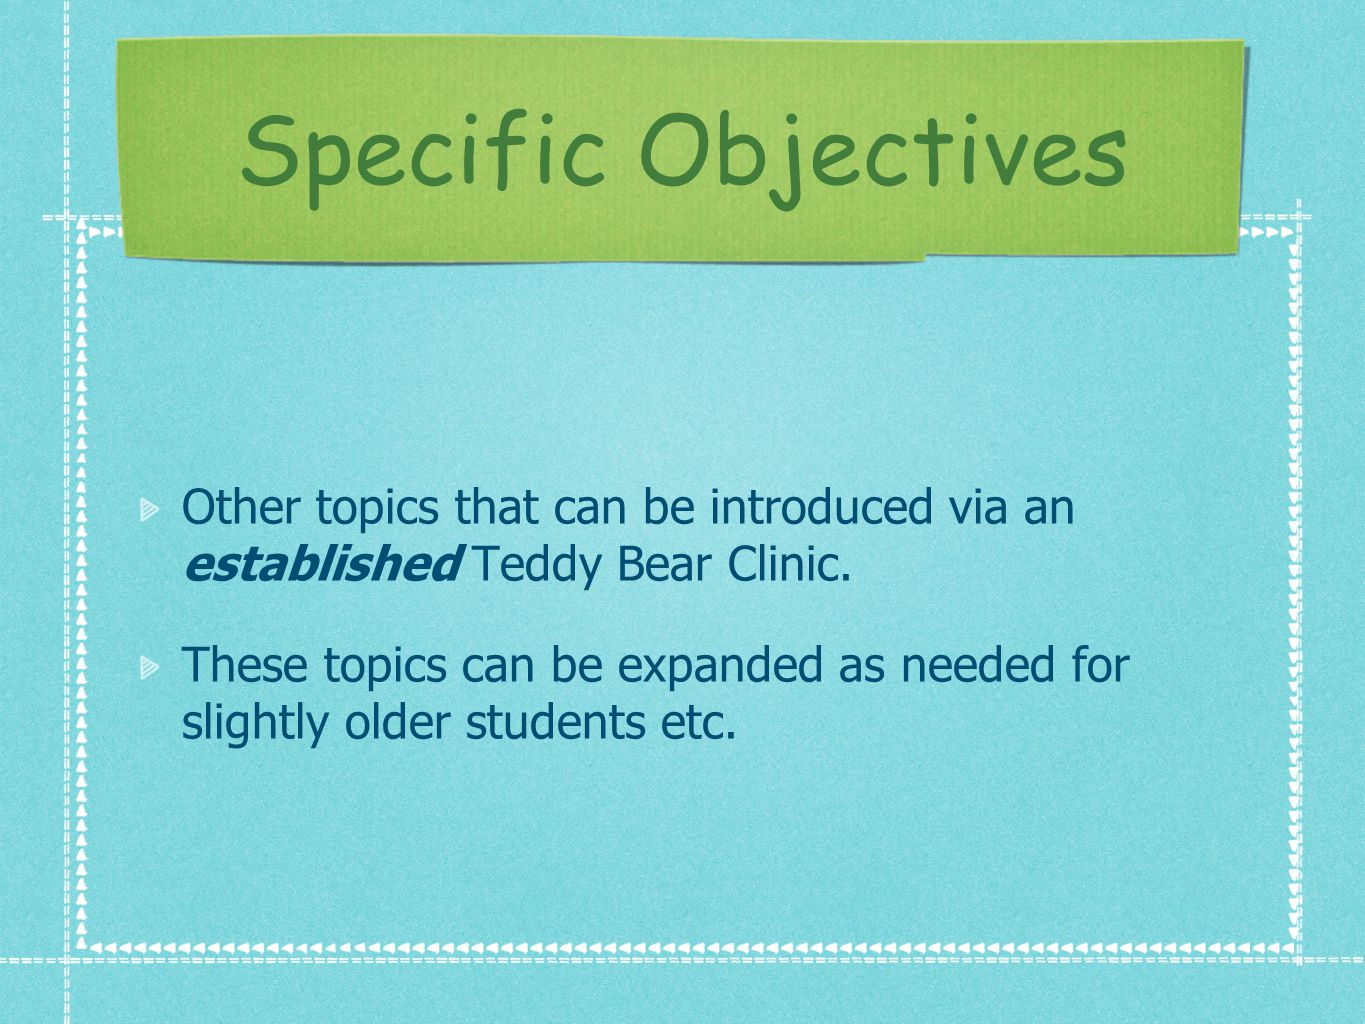 Specific Objectives Other topics that can be introduced via an established Teddy Bear Clinic.